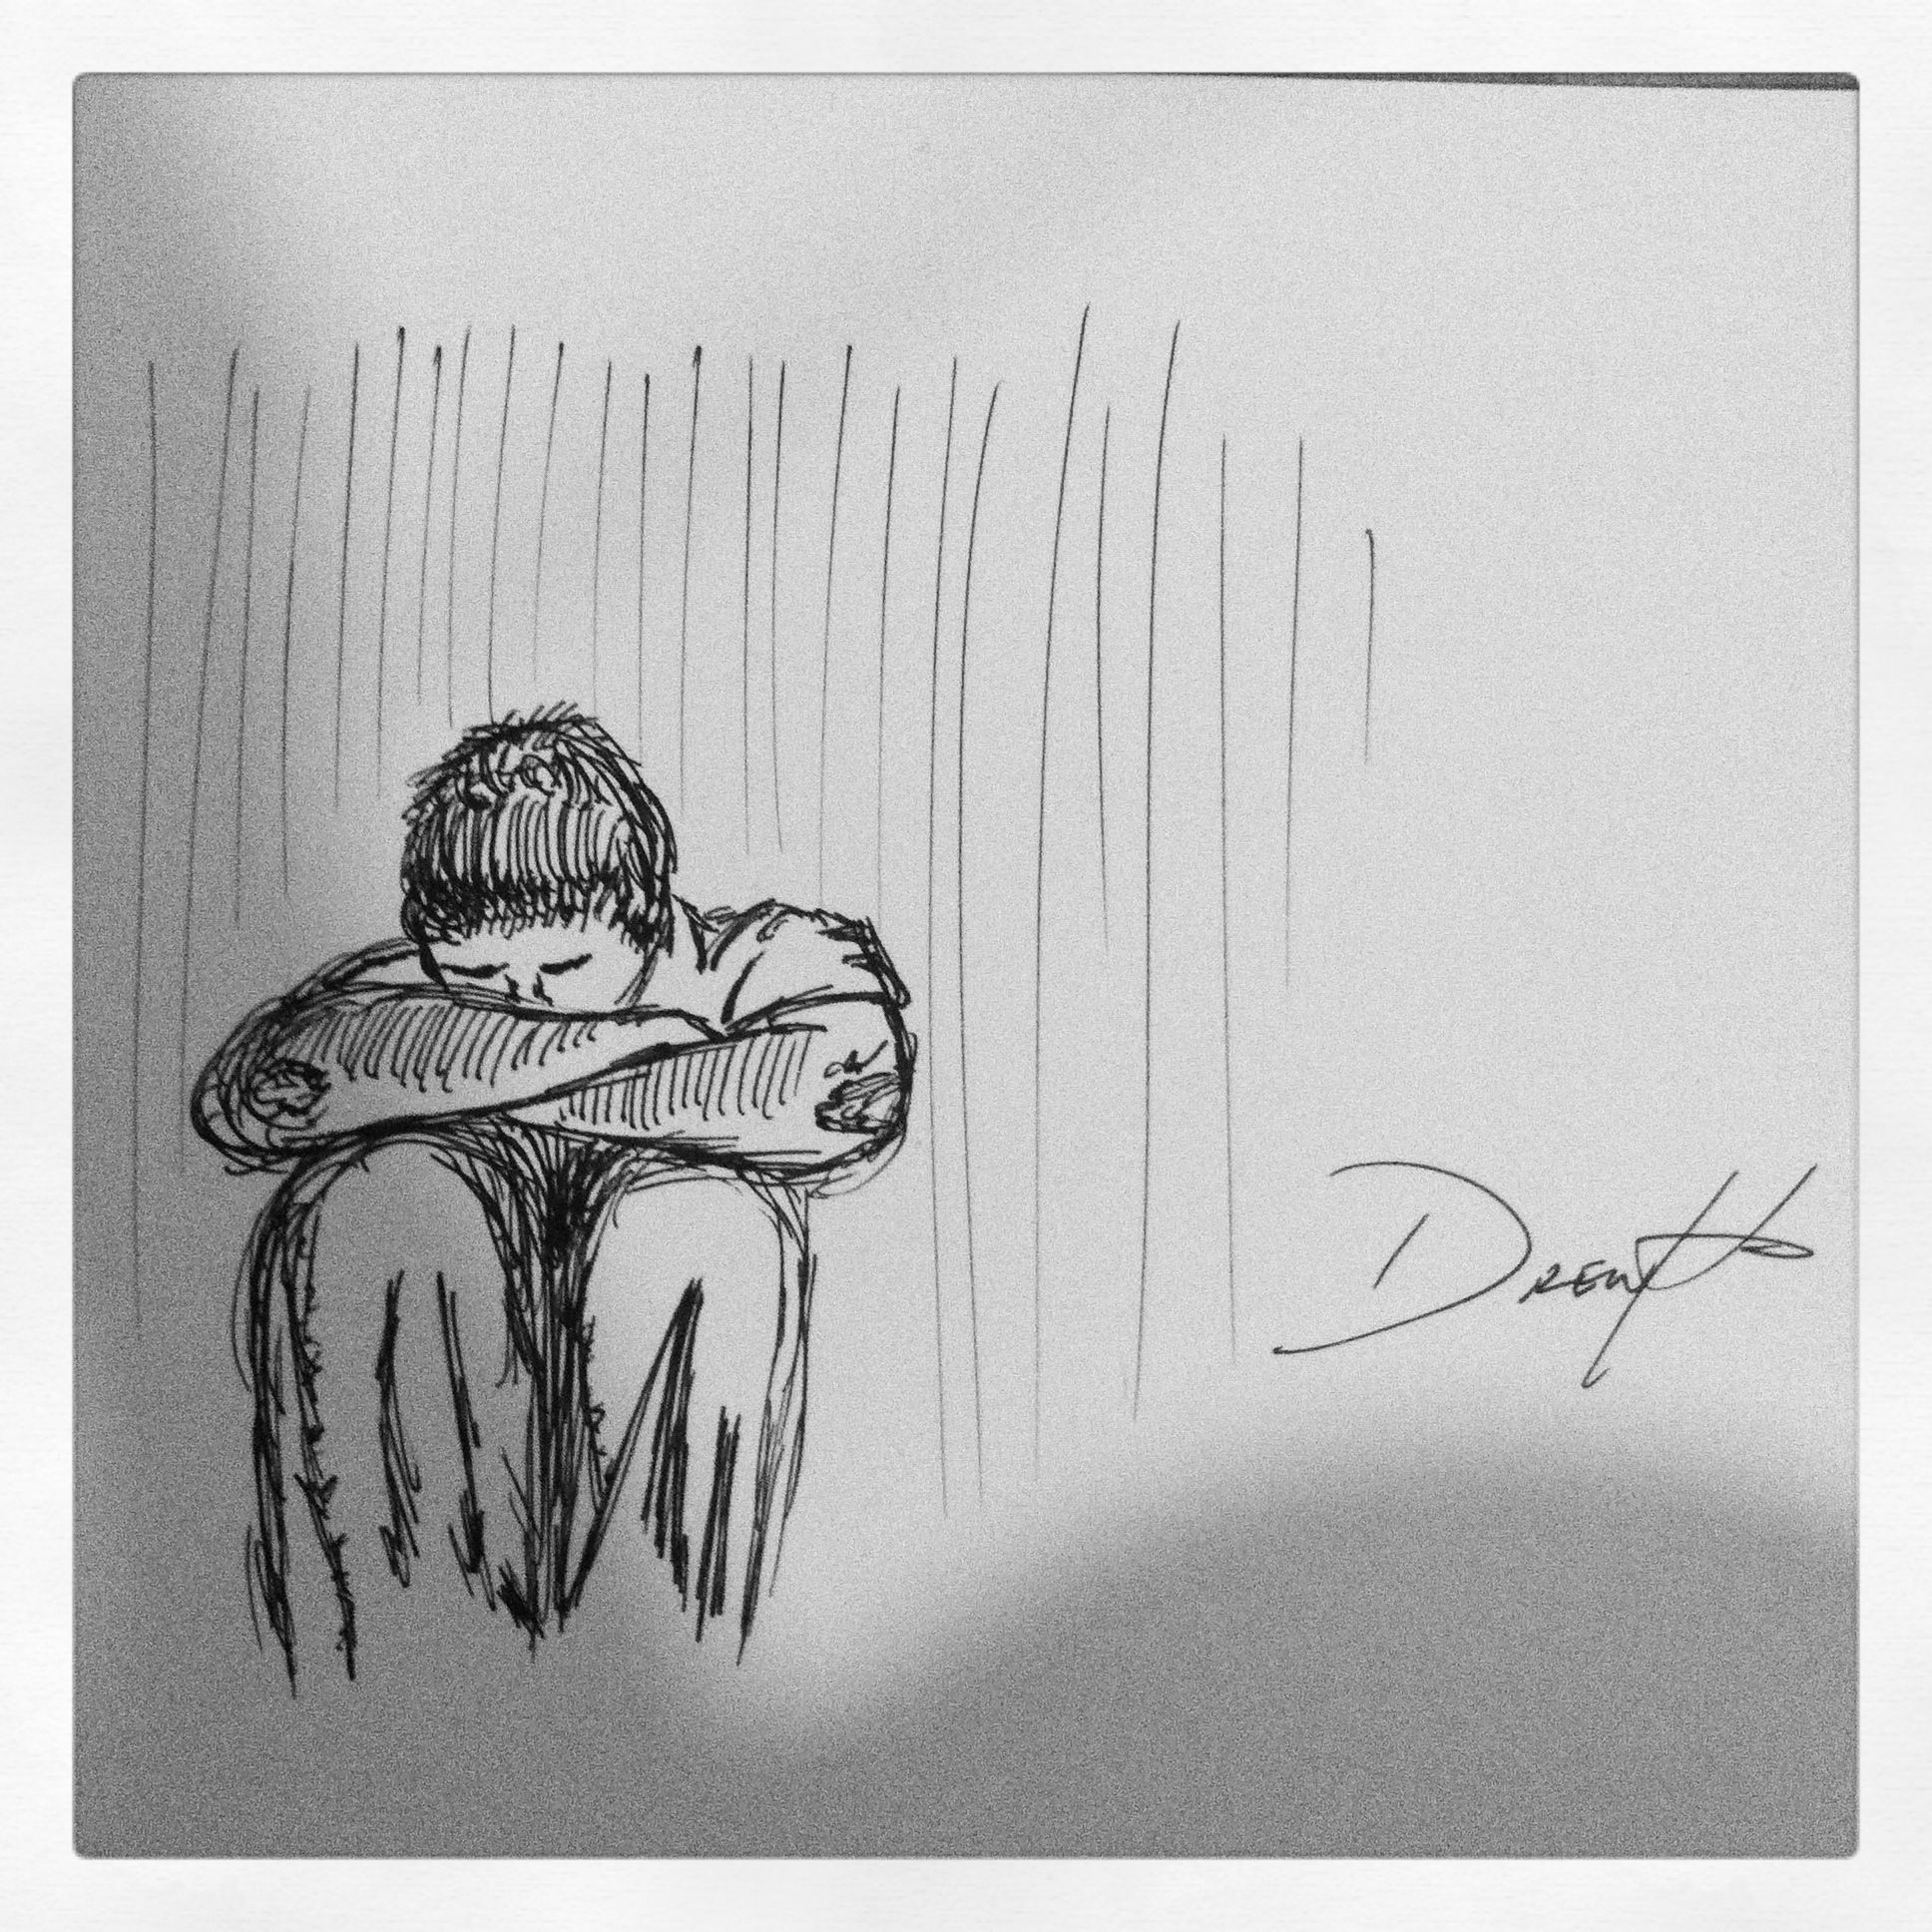 Ink pen sketch lonely man